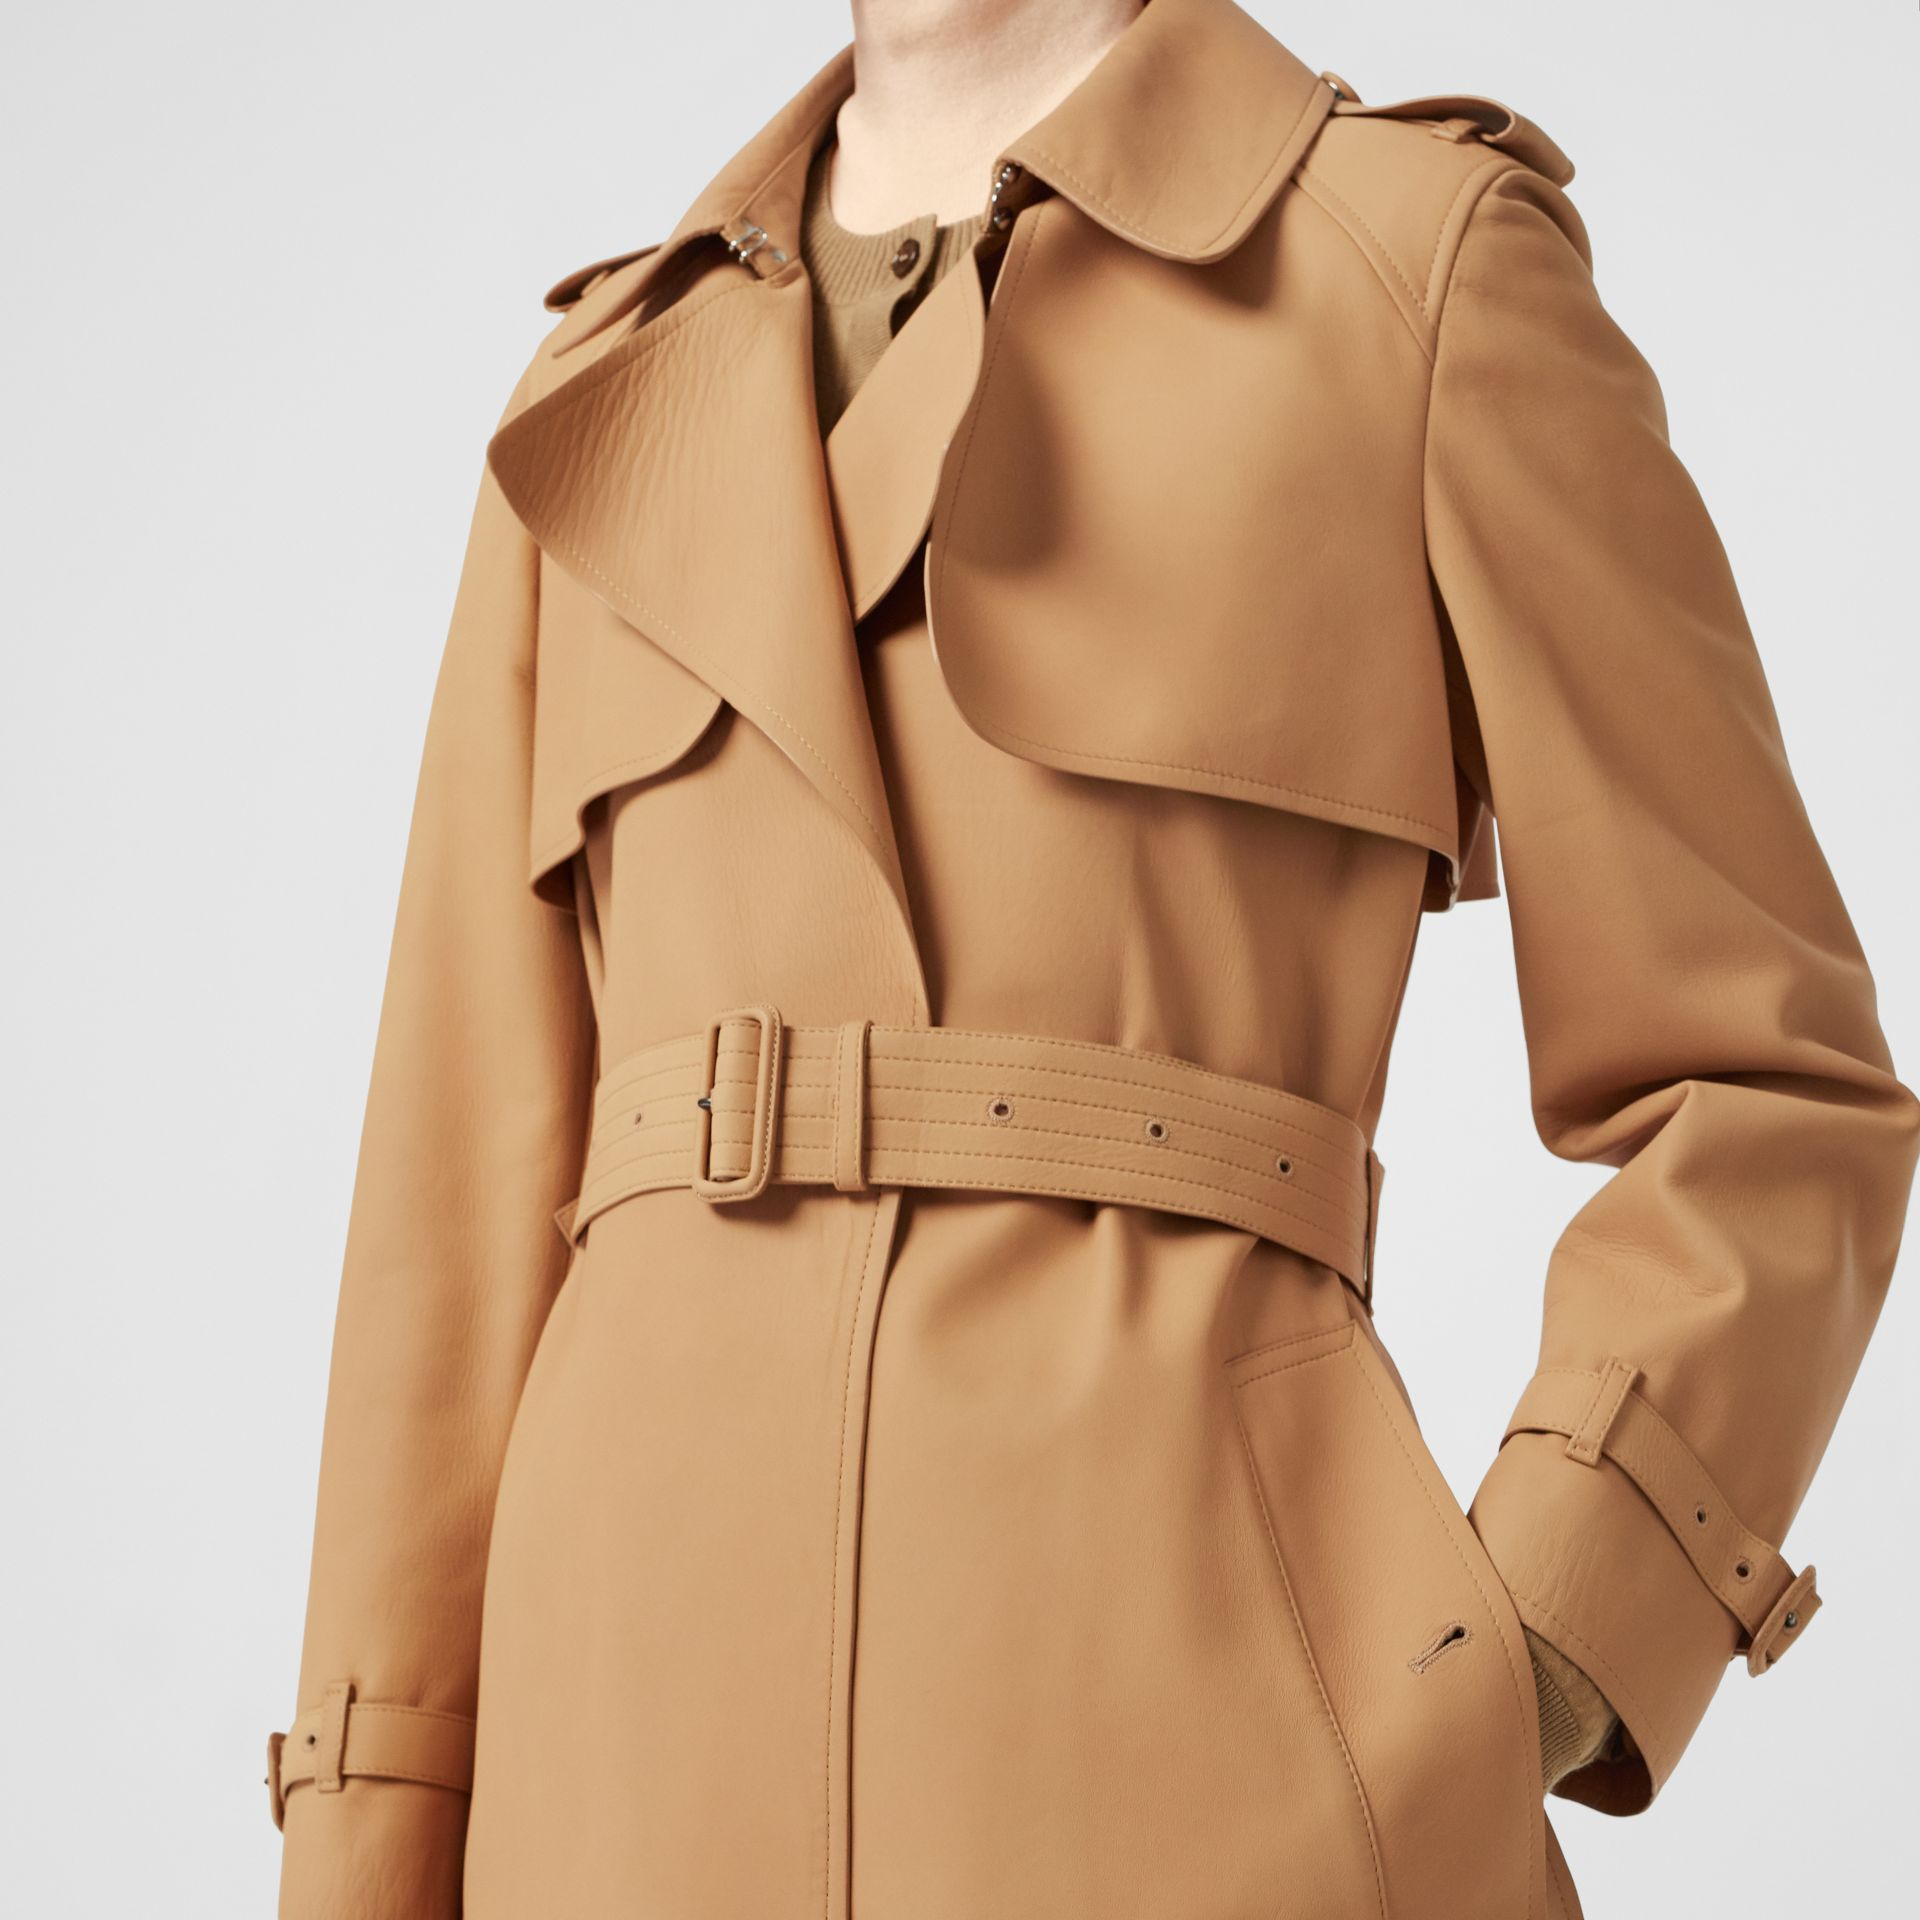 Lambskin Wrap Trench Coat in Caramel - Women | Burberry - gallery image 5